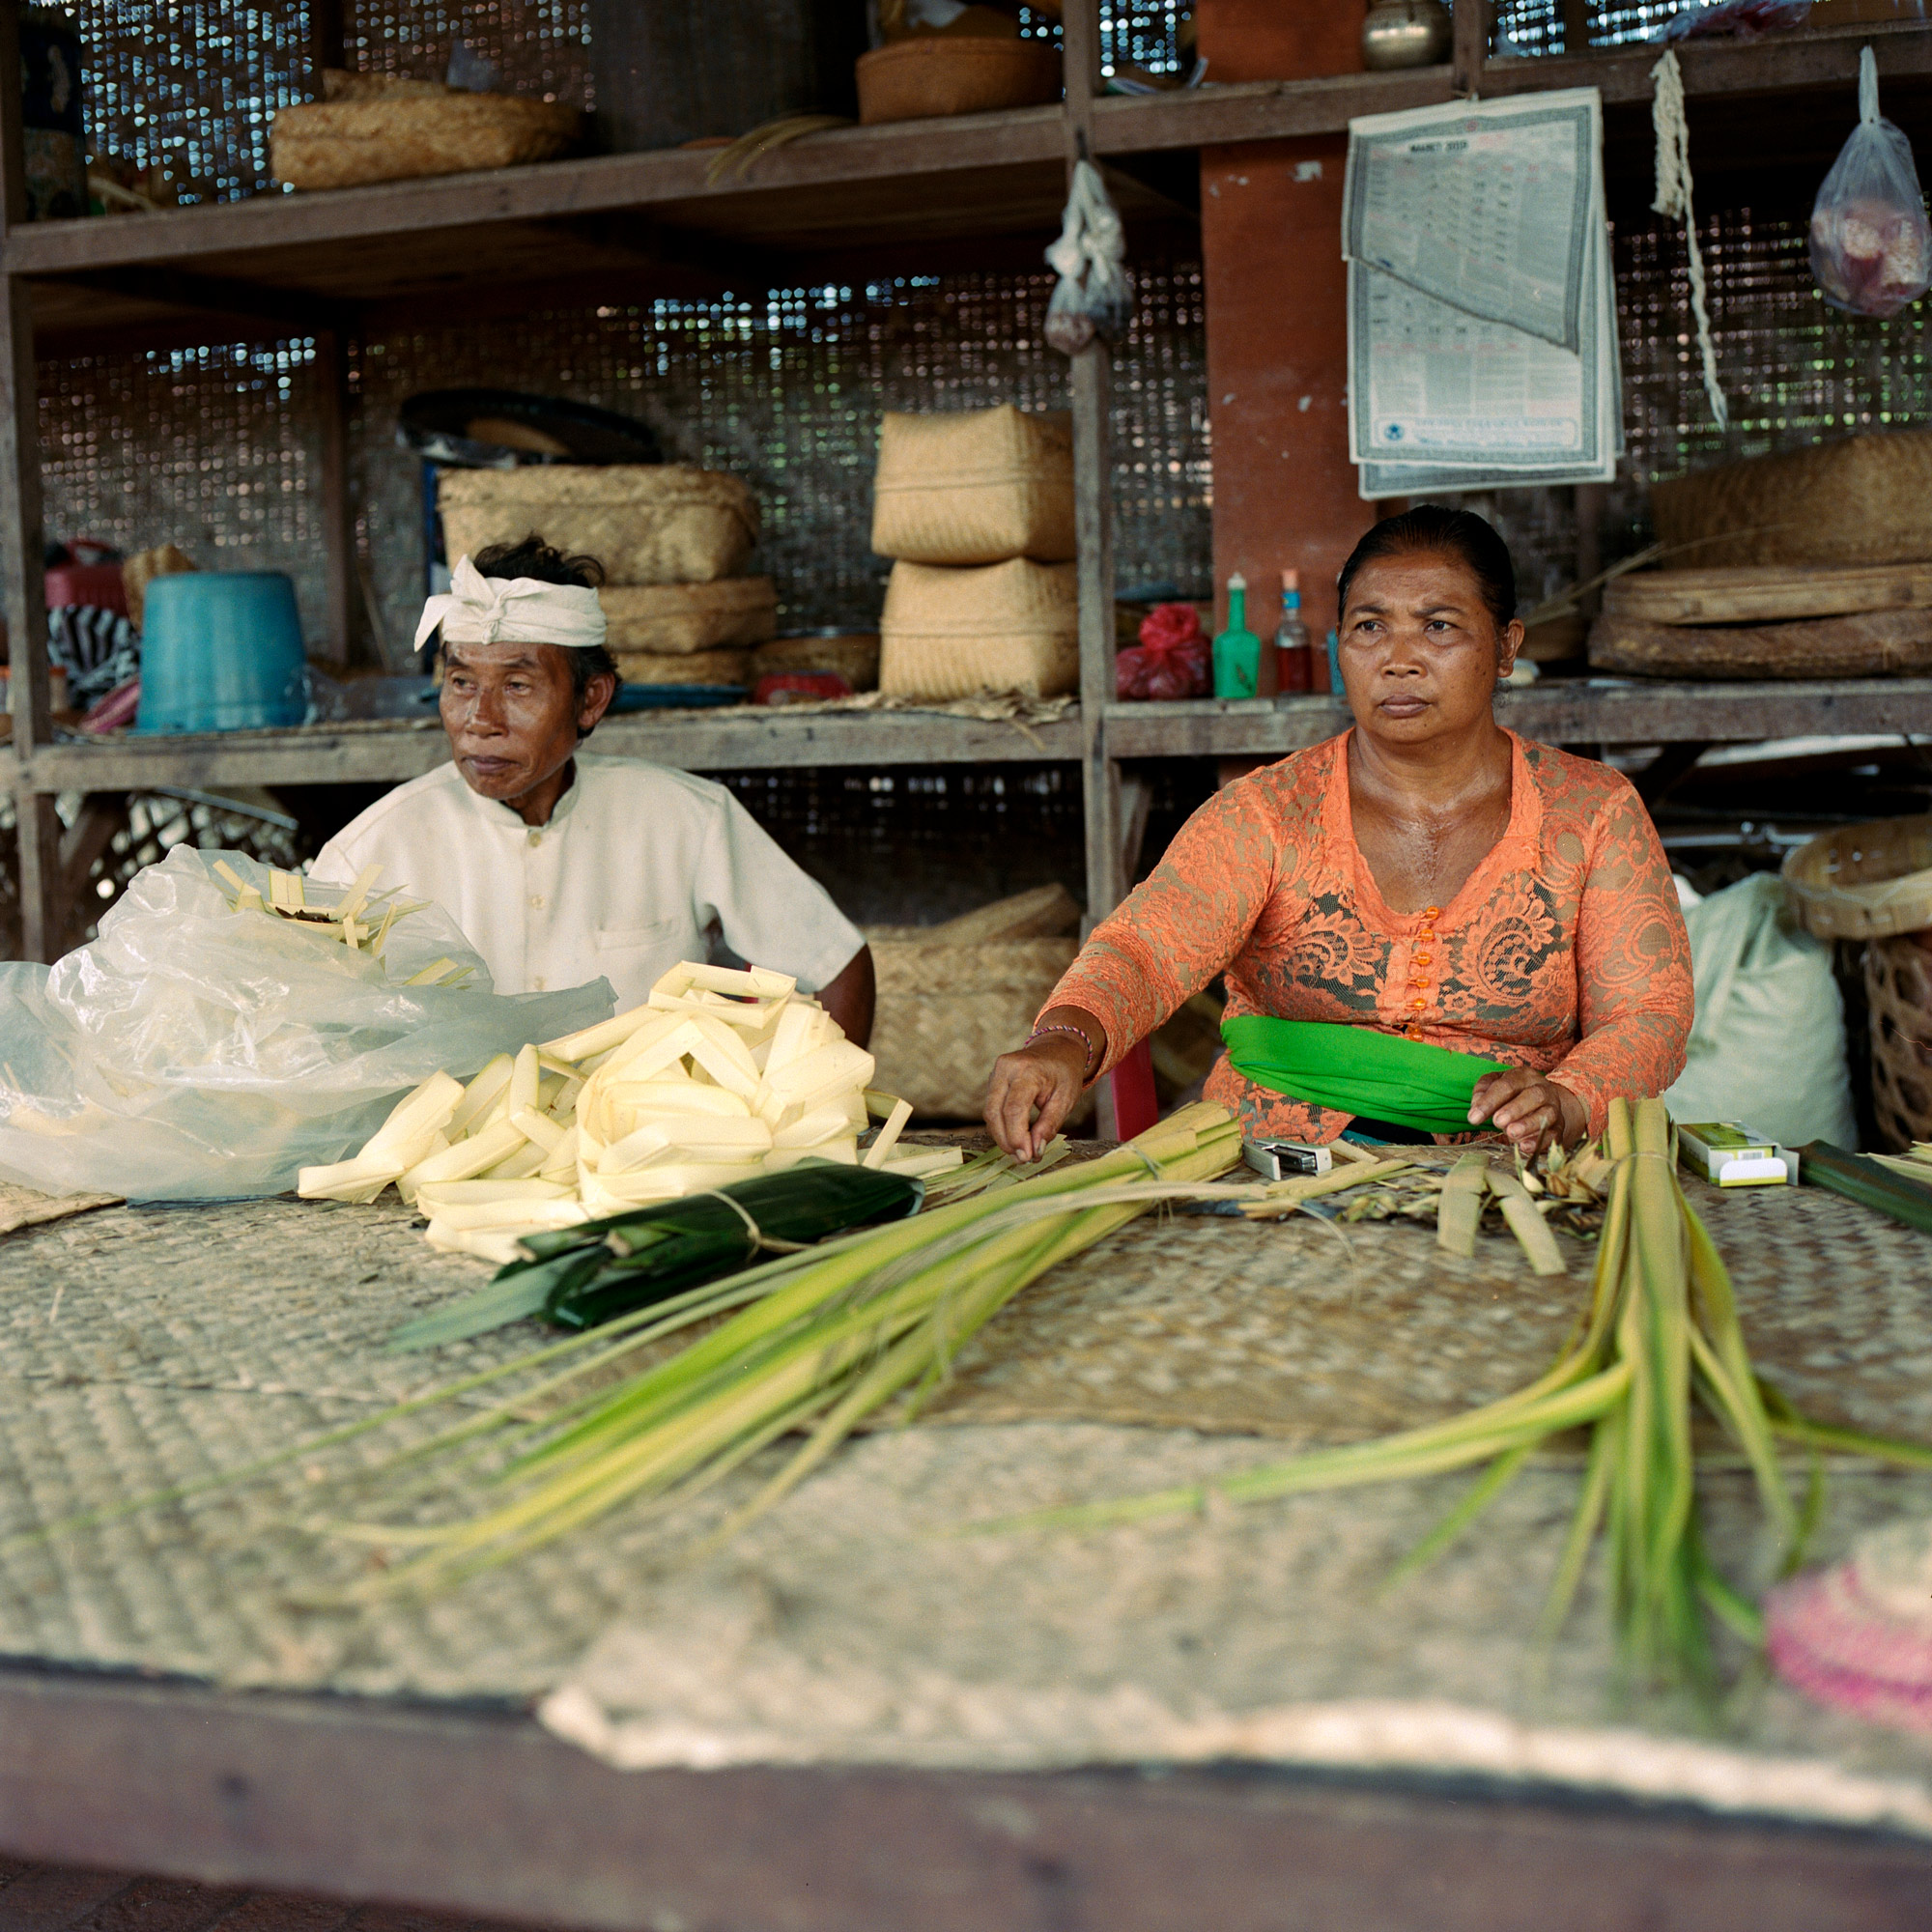 Weaving Coconut Leaves, Singapadu, Ubud, Eastern Travels, Photography By Ioannis Koussertari